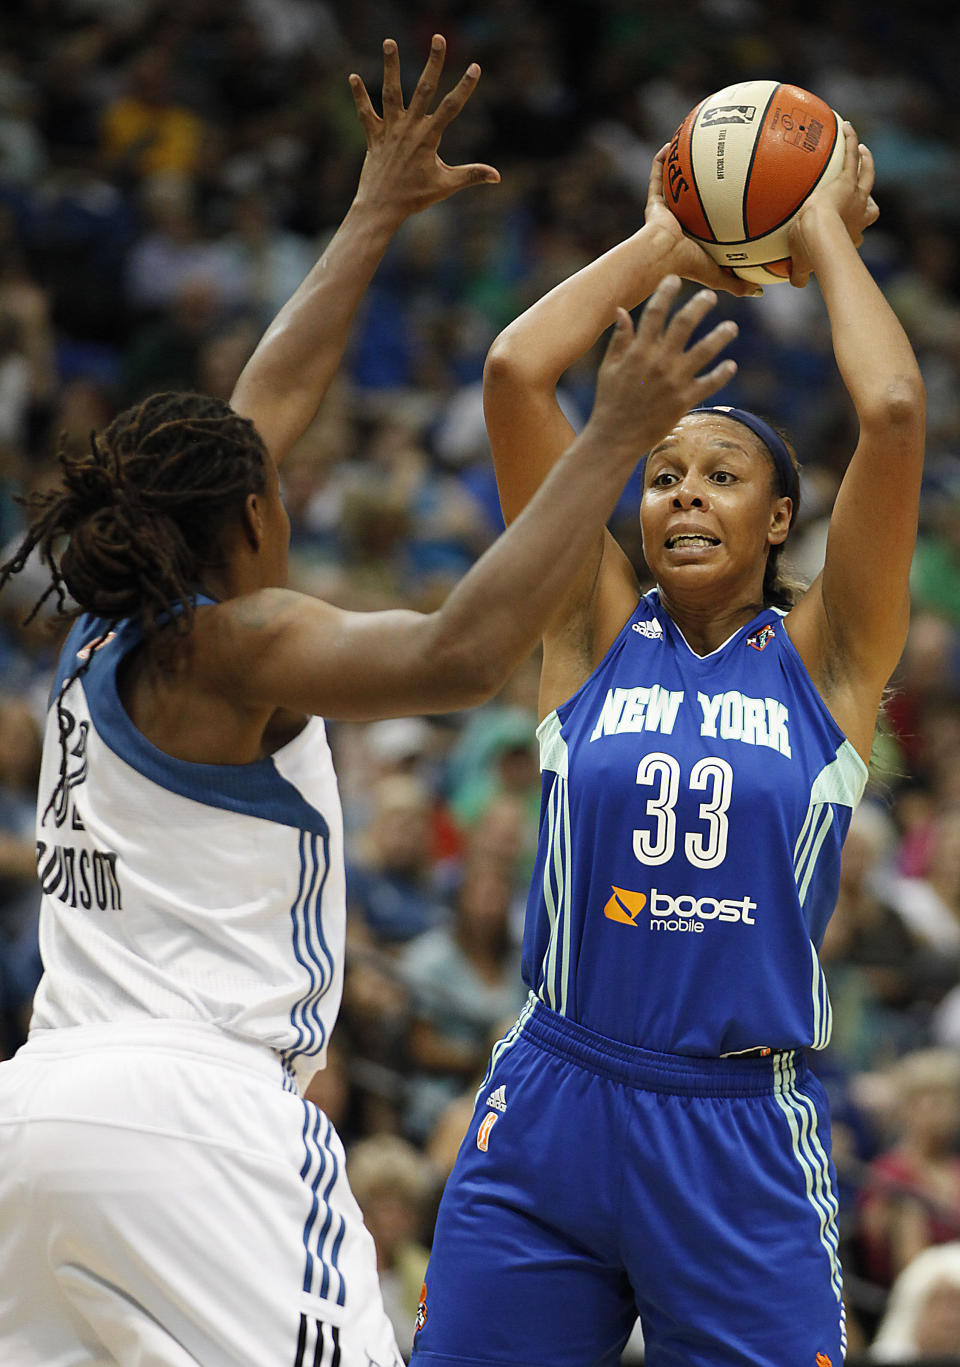 New York Liberty forward Plenette Pierson (33) looks to make a pass against the defense of Minnesota Lynx forward Rebekkah Brunson (32) in the first half of a WNBA basketball game, Sunday, Aug. 18, 2013, in Minneapolis. (AP Photo/Stacy Bengs)